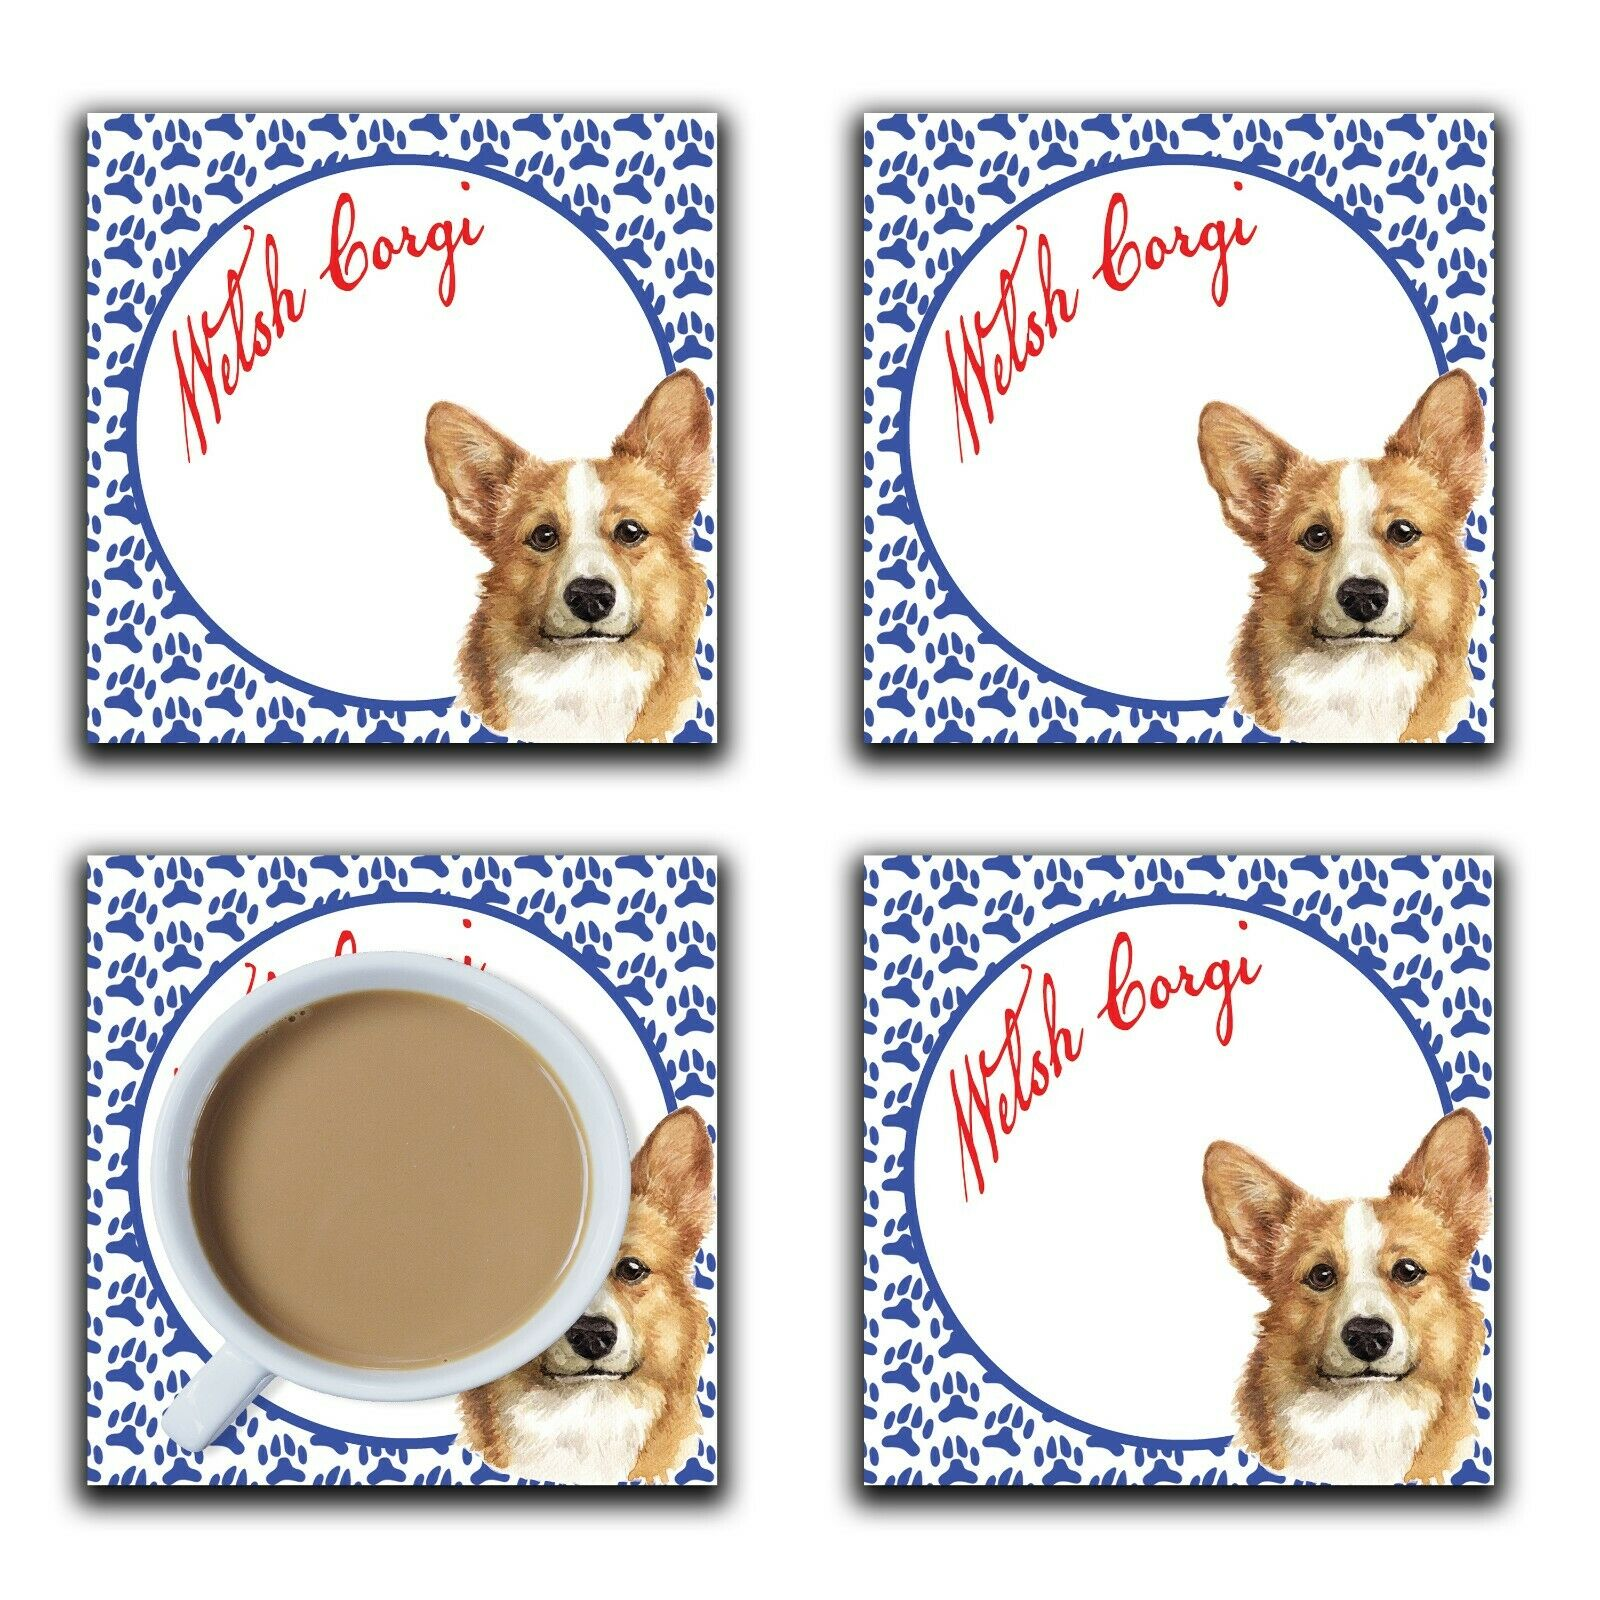 Embossi Printed Welsh Corgi, wood or ceramic tile, set of 4 Dog Coasters